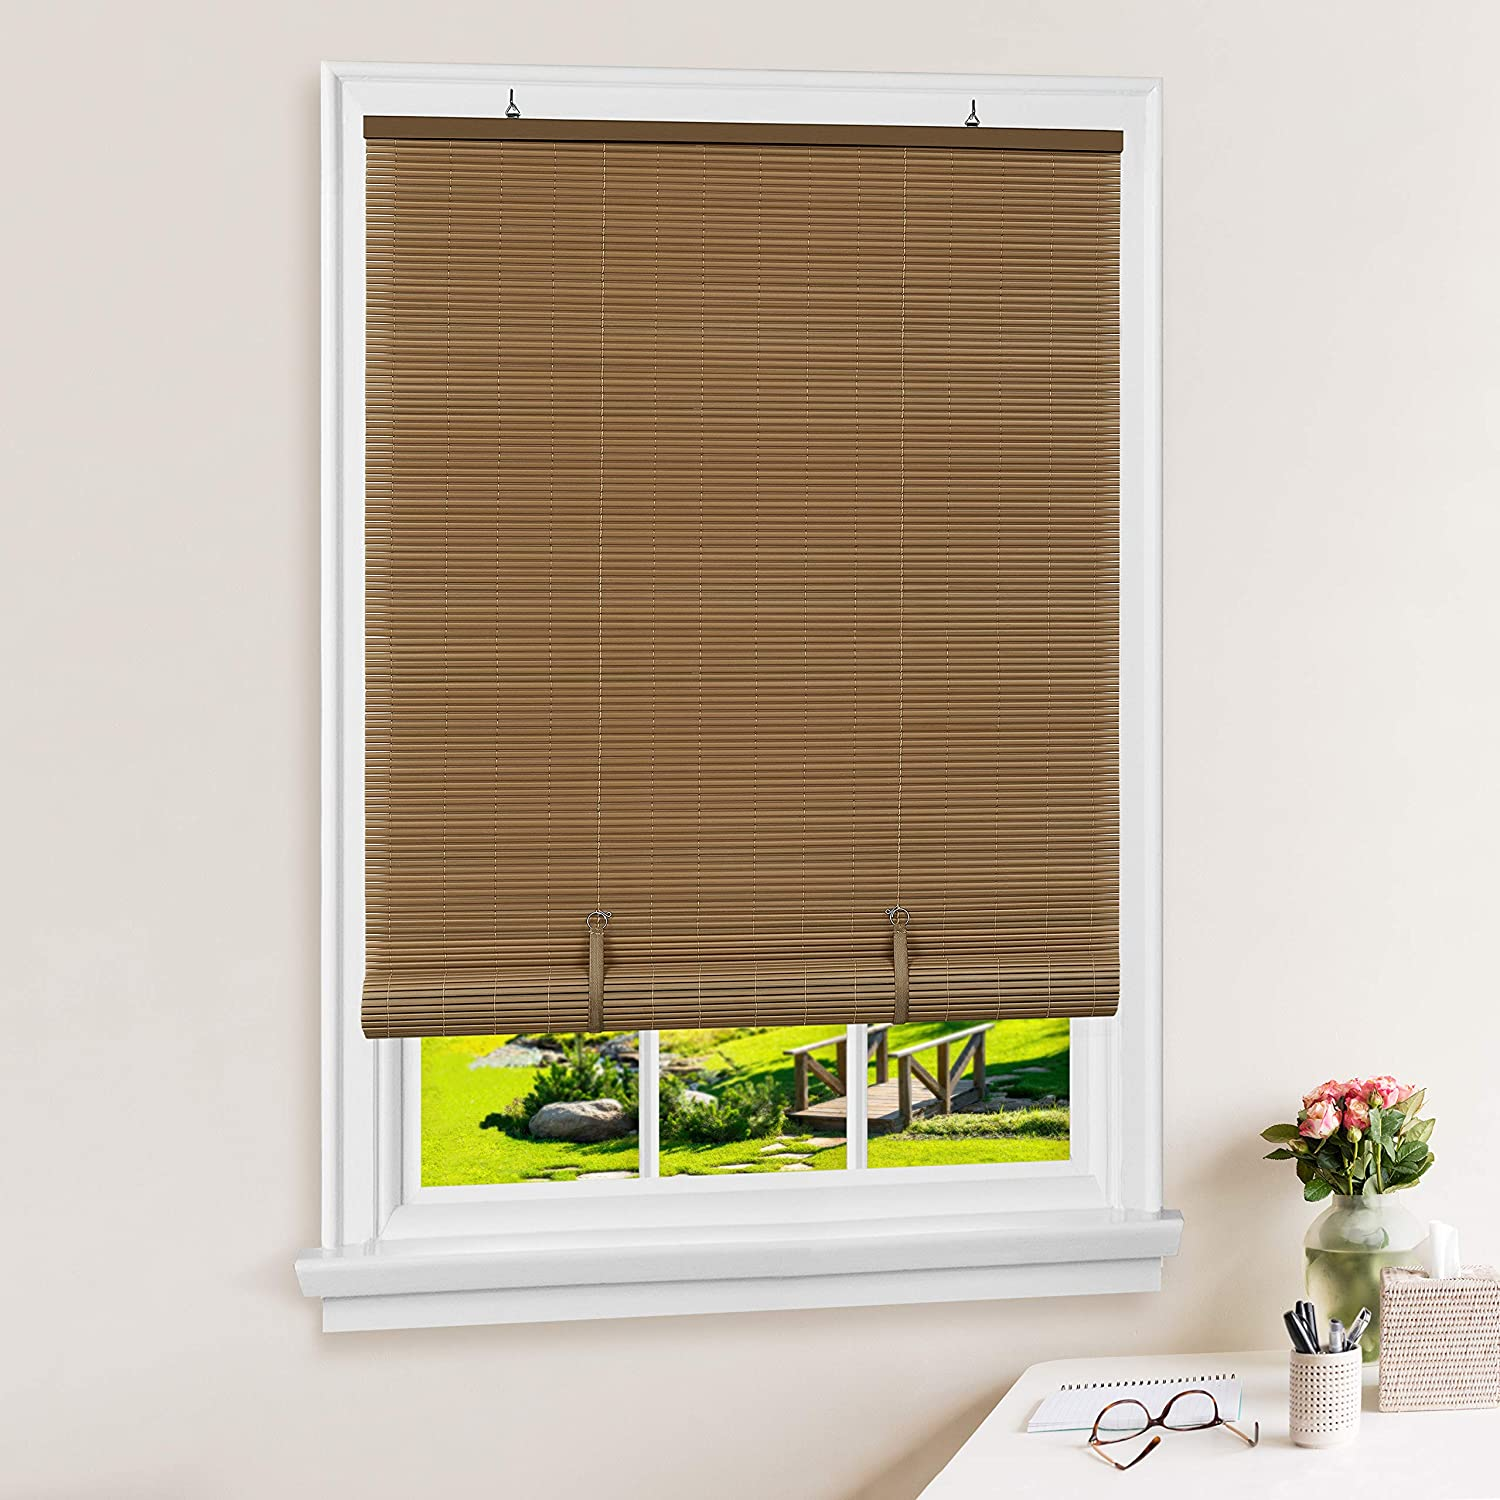 Achim Home Furnishings Vinyl Roll-Up Blind Cordless Solstice, 36